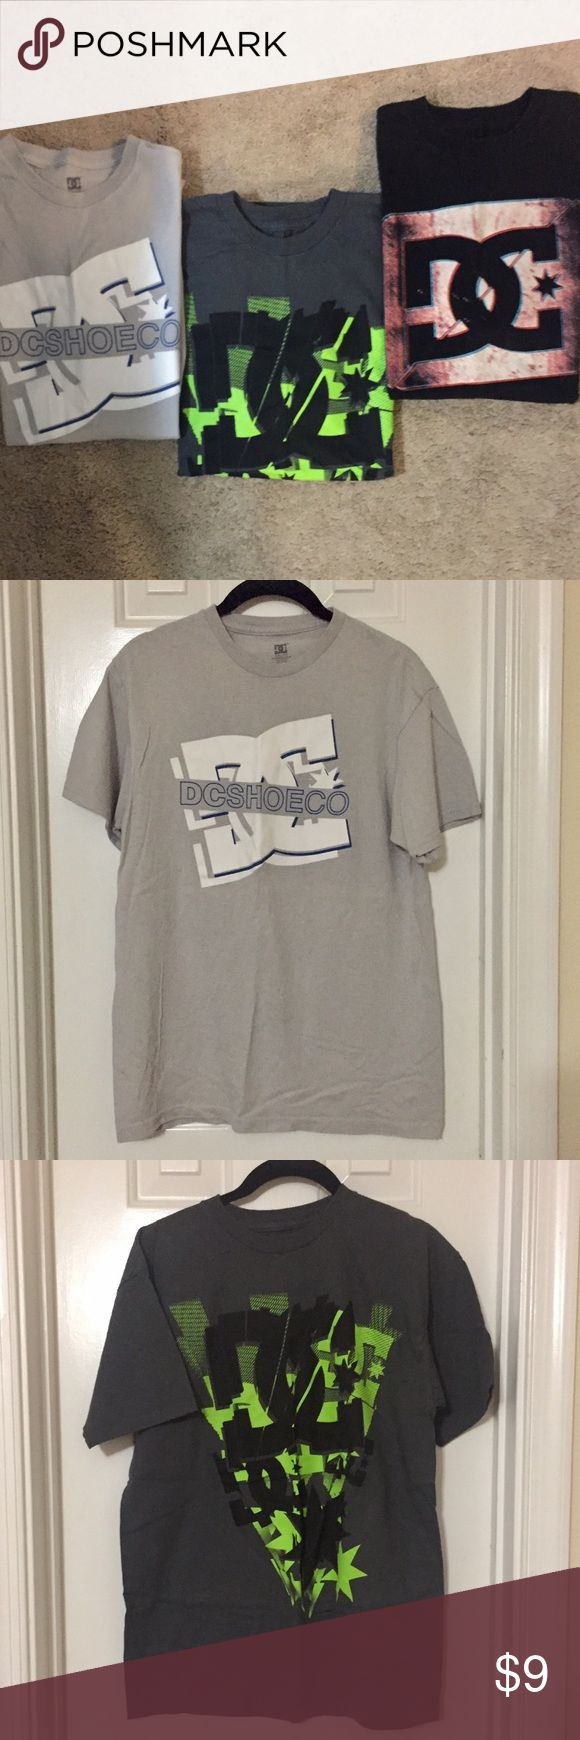 Bundle of 3 DC Skate Medium Youth Boys T Shirts These shirts are in good condition! No stains, holes or rips. Normal wear. DC Shirts & Tops Tees - Short Sleeve